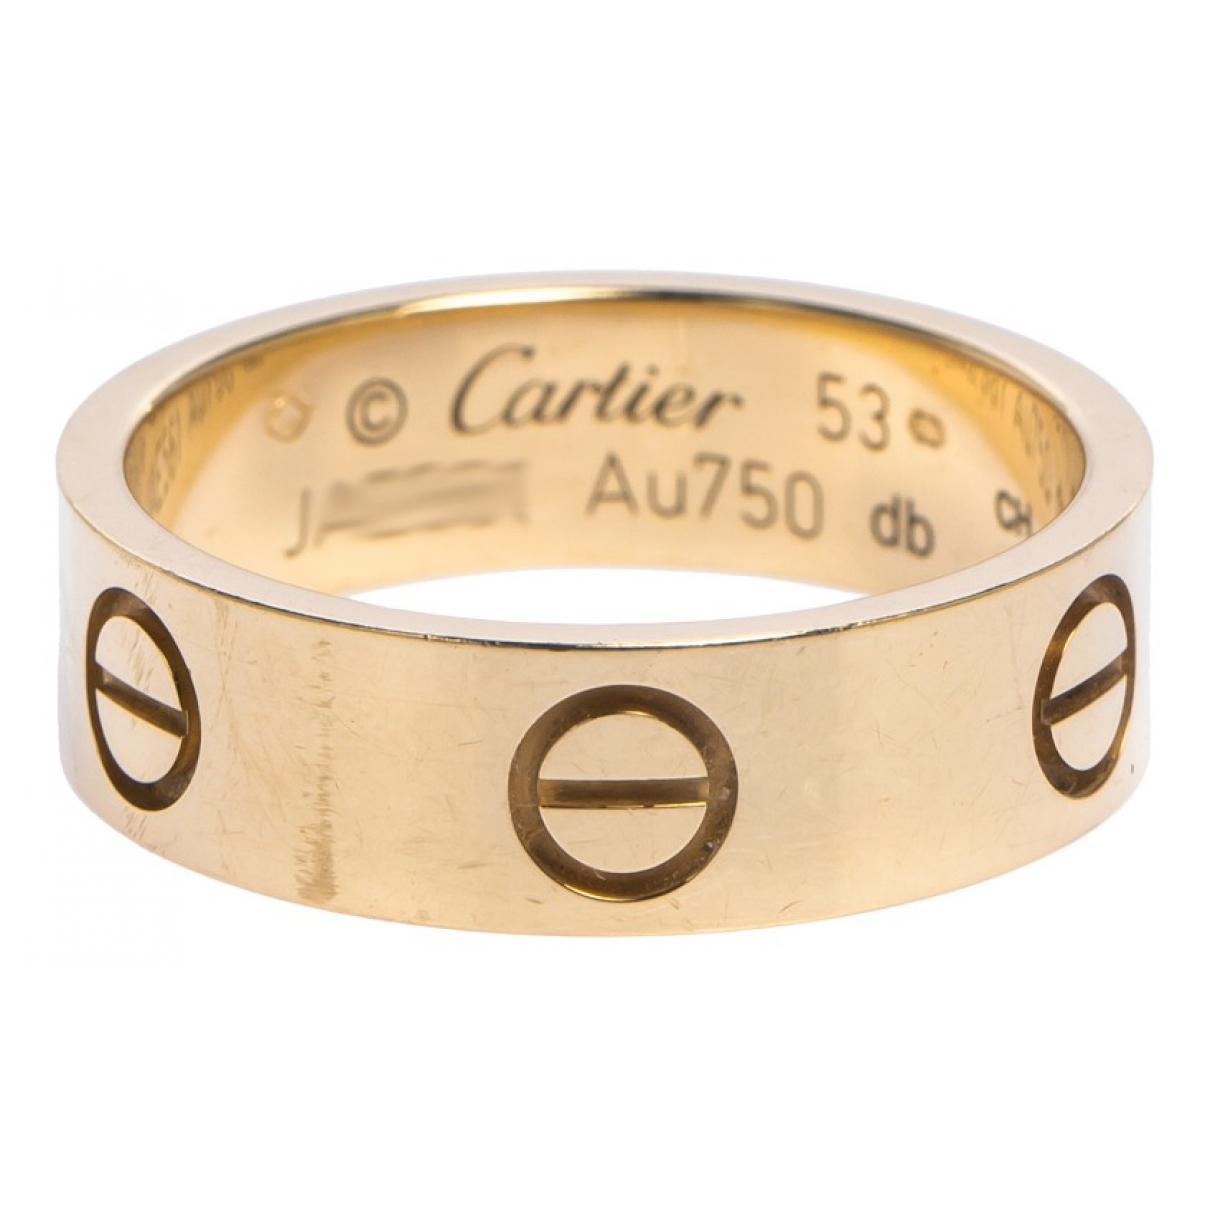 Cartier Love Ring in Gelbgold